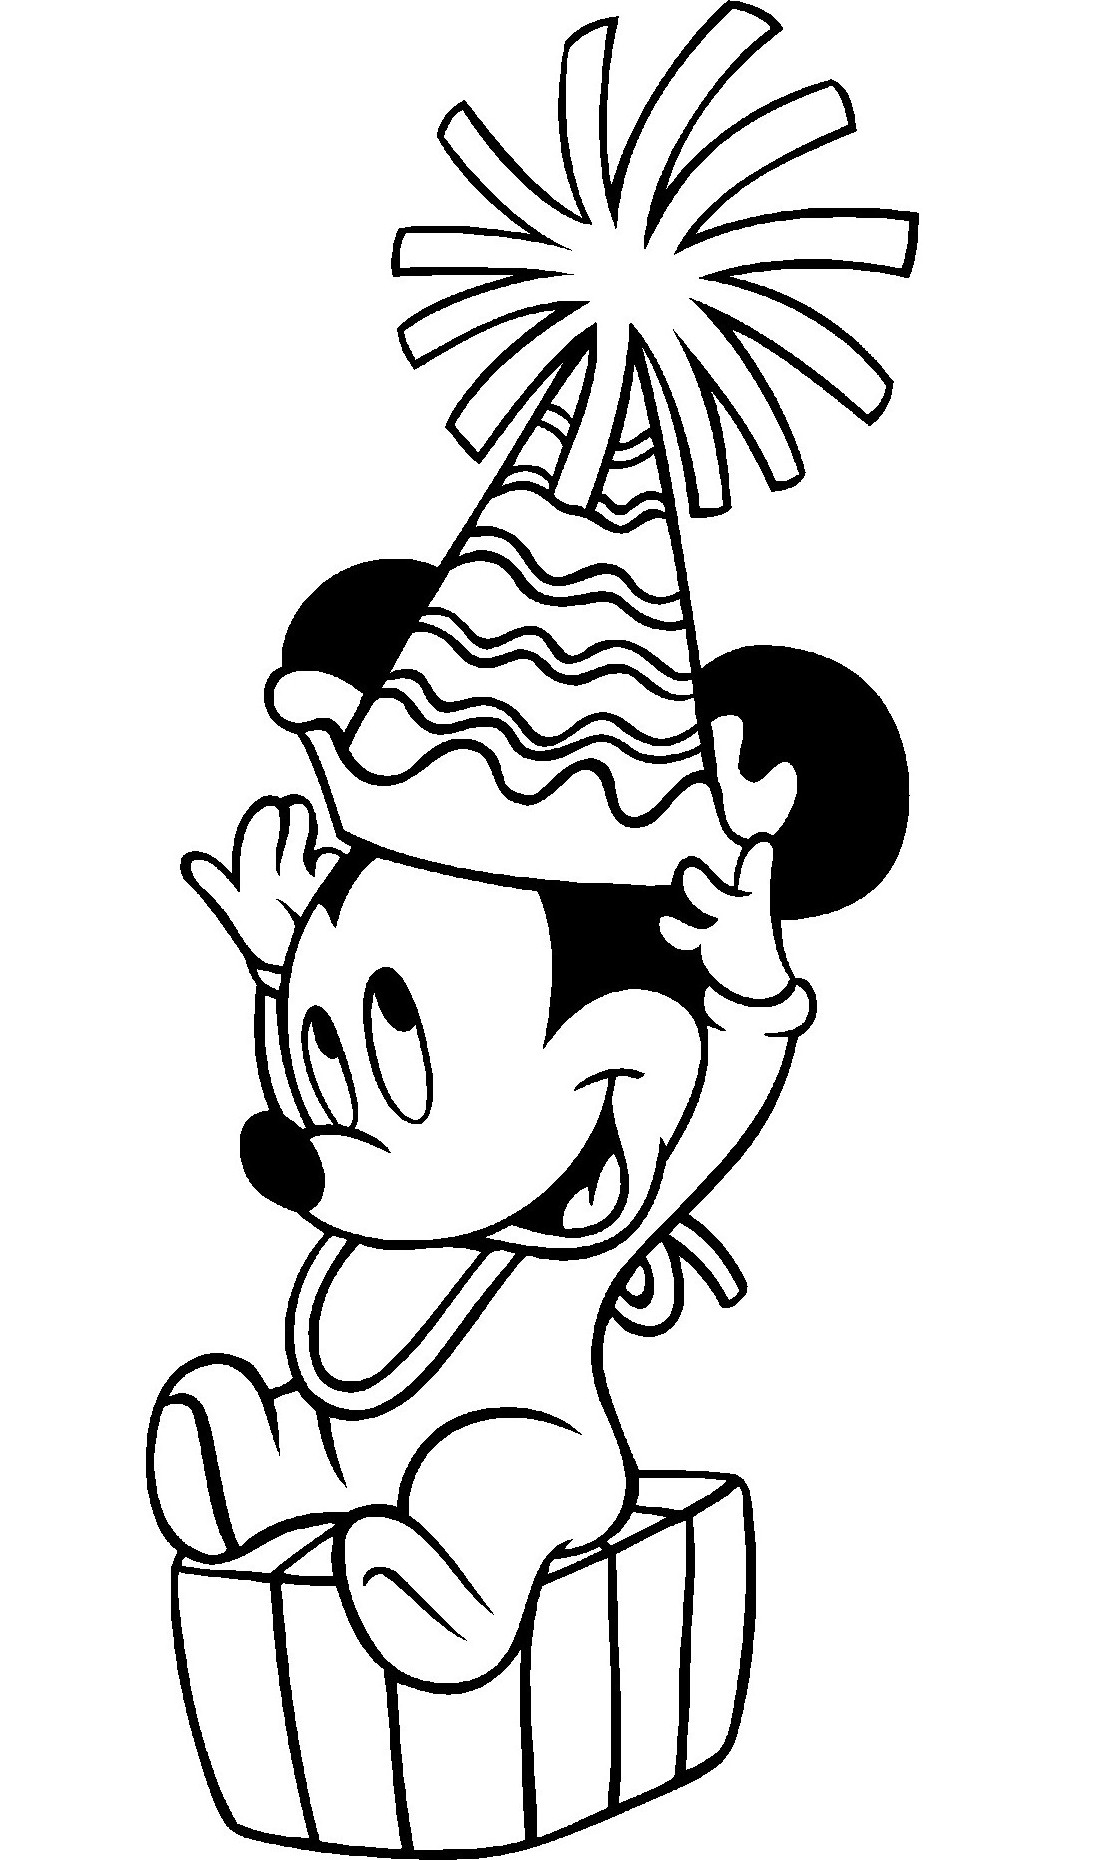 free 1st birthday coloring pages - photo#33